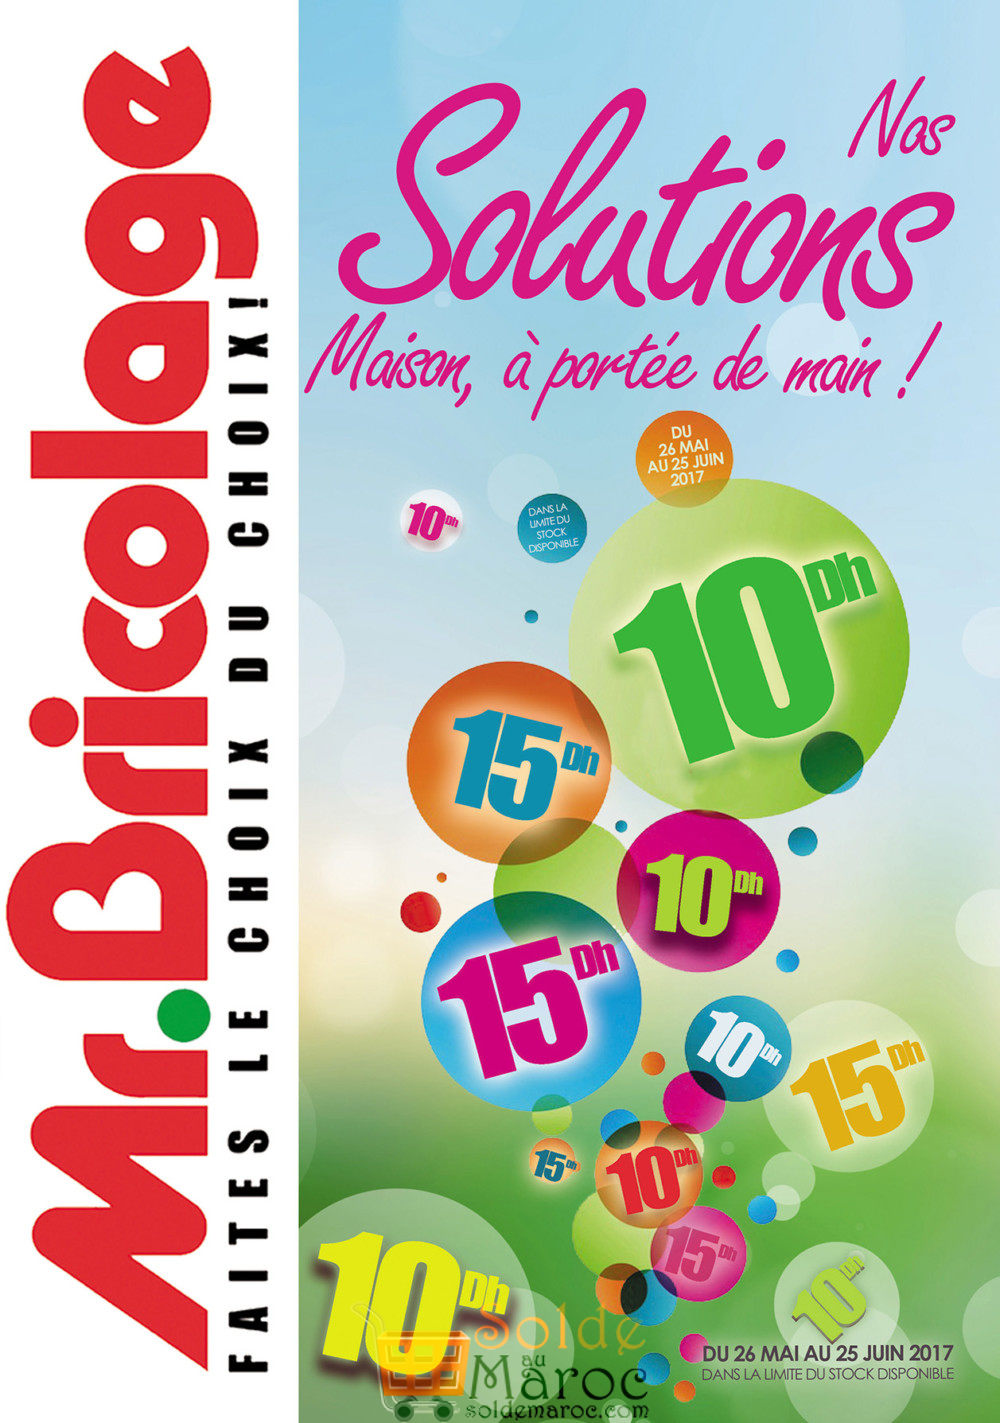 Bricolage gisors excellent catalogue mrbricolage millau with bricolage gisors un indpendant - Magasin bricolage evreux ...